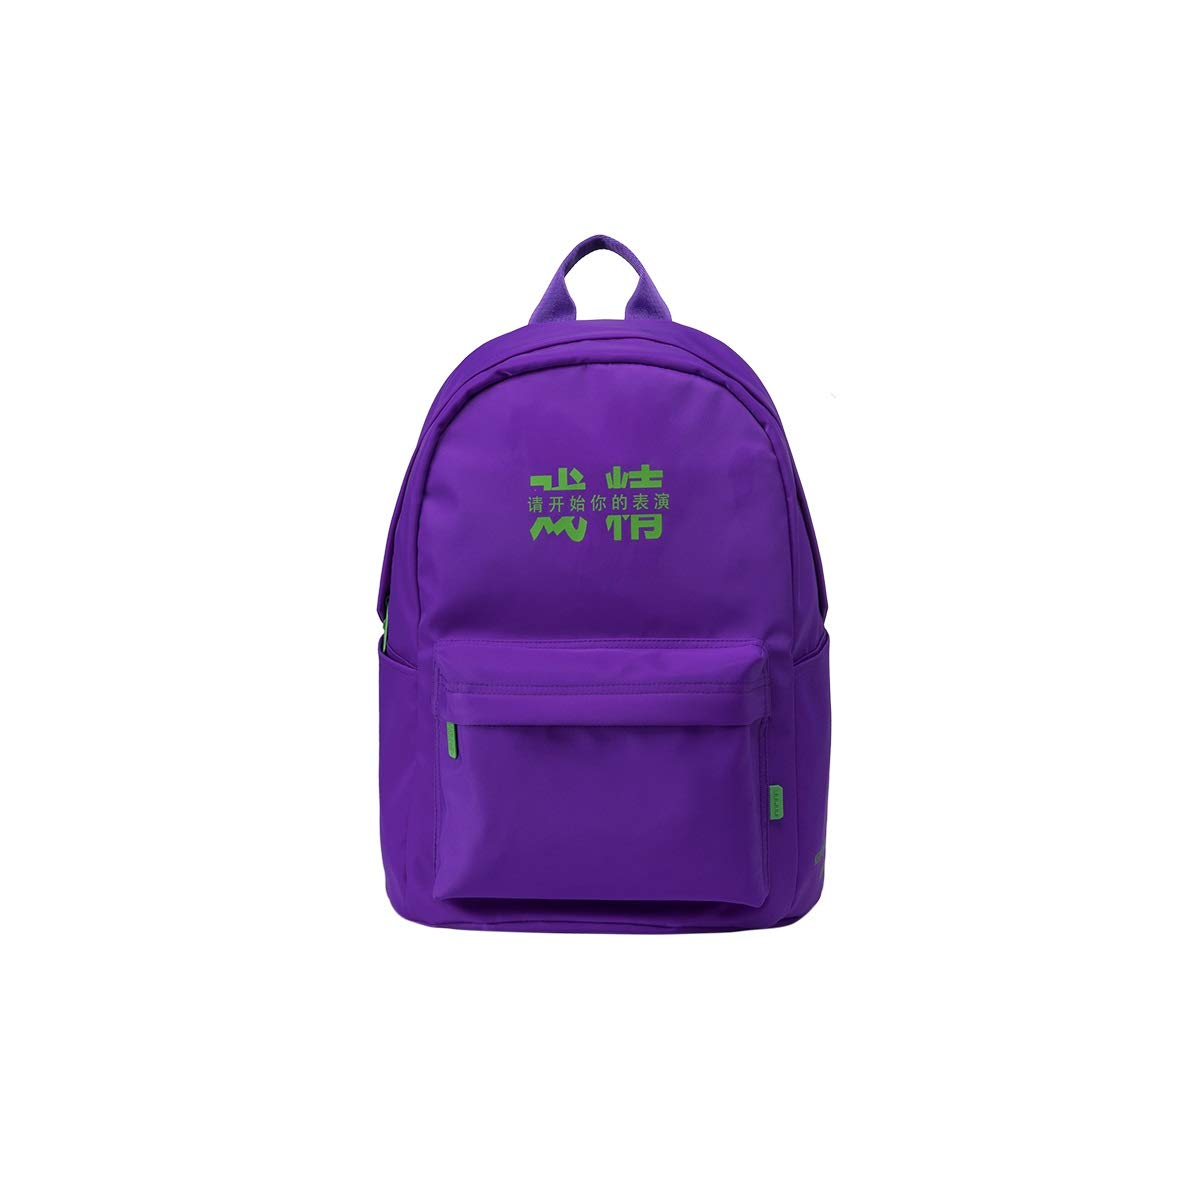 TONGBOSHI Backpack Female, Backpack Travel Bag Casual Middle School Bag, Fashion Trend Backpack (Color : Purple)